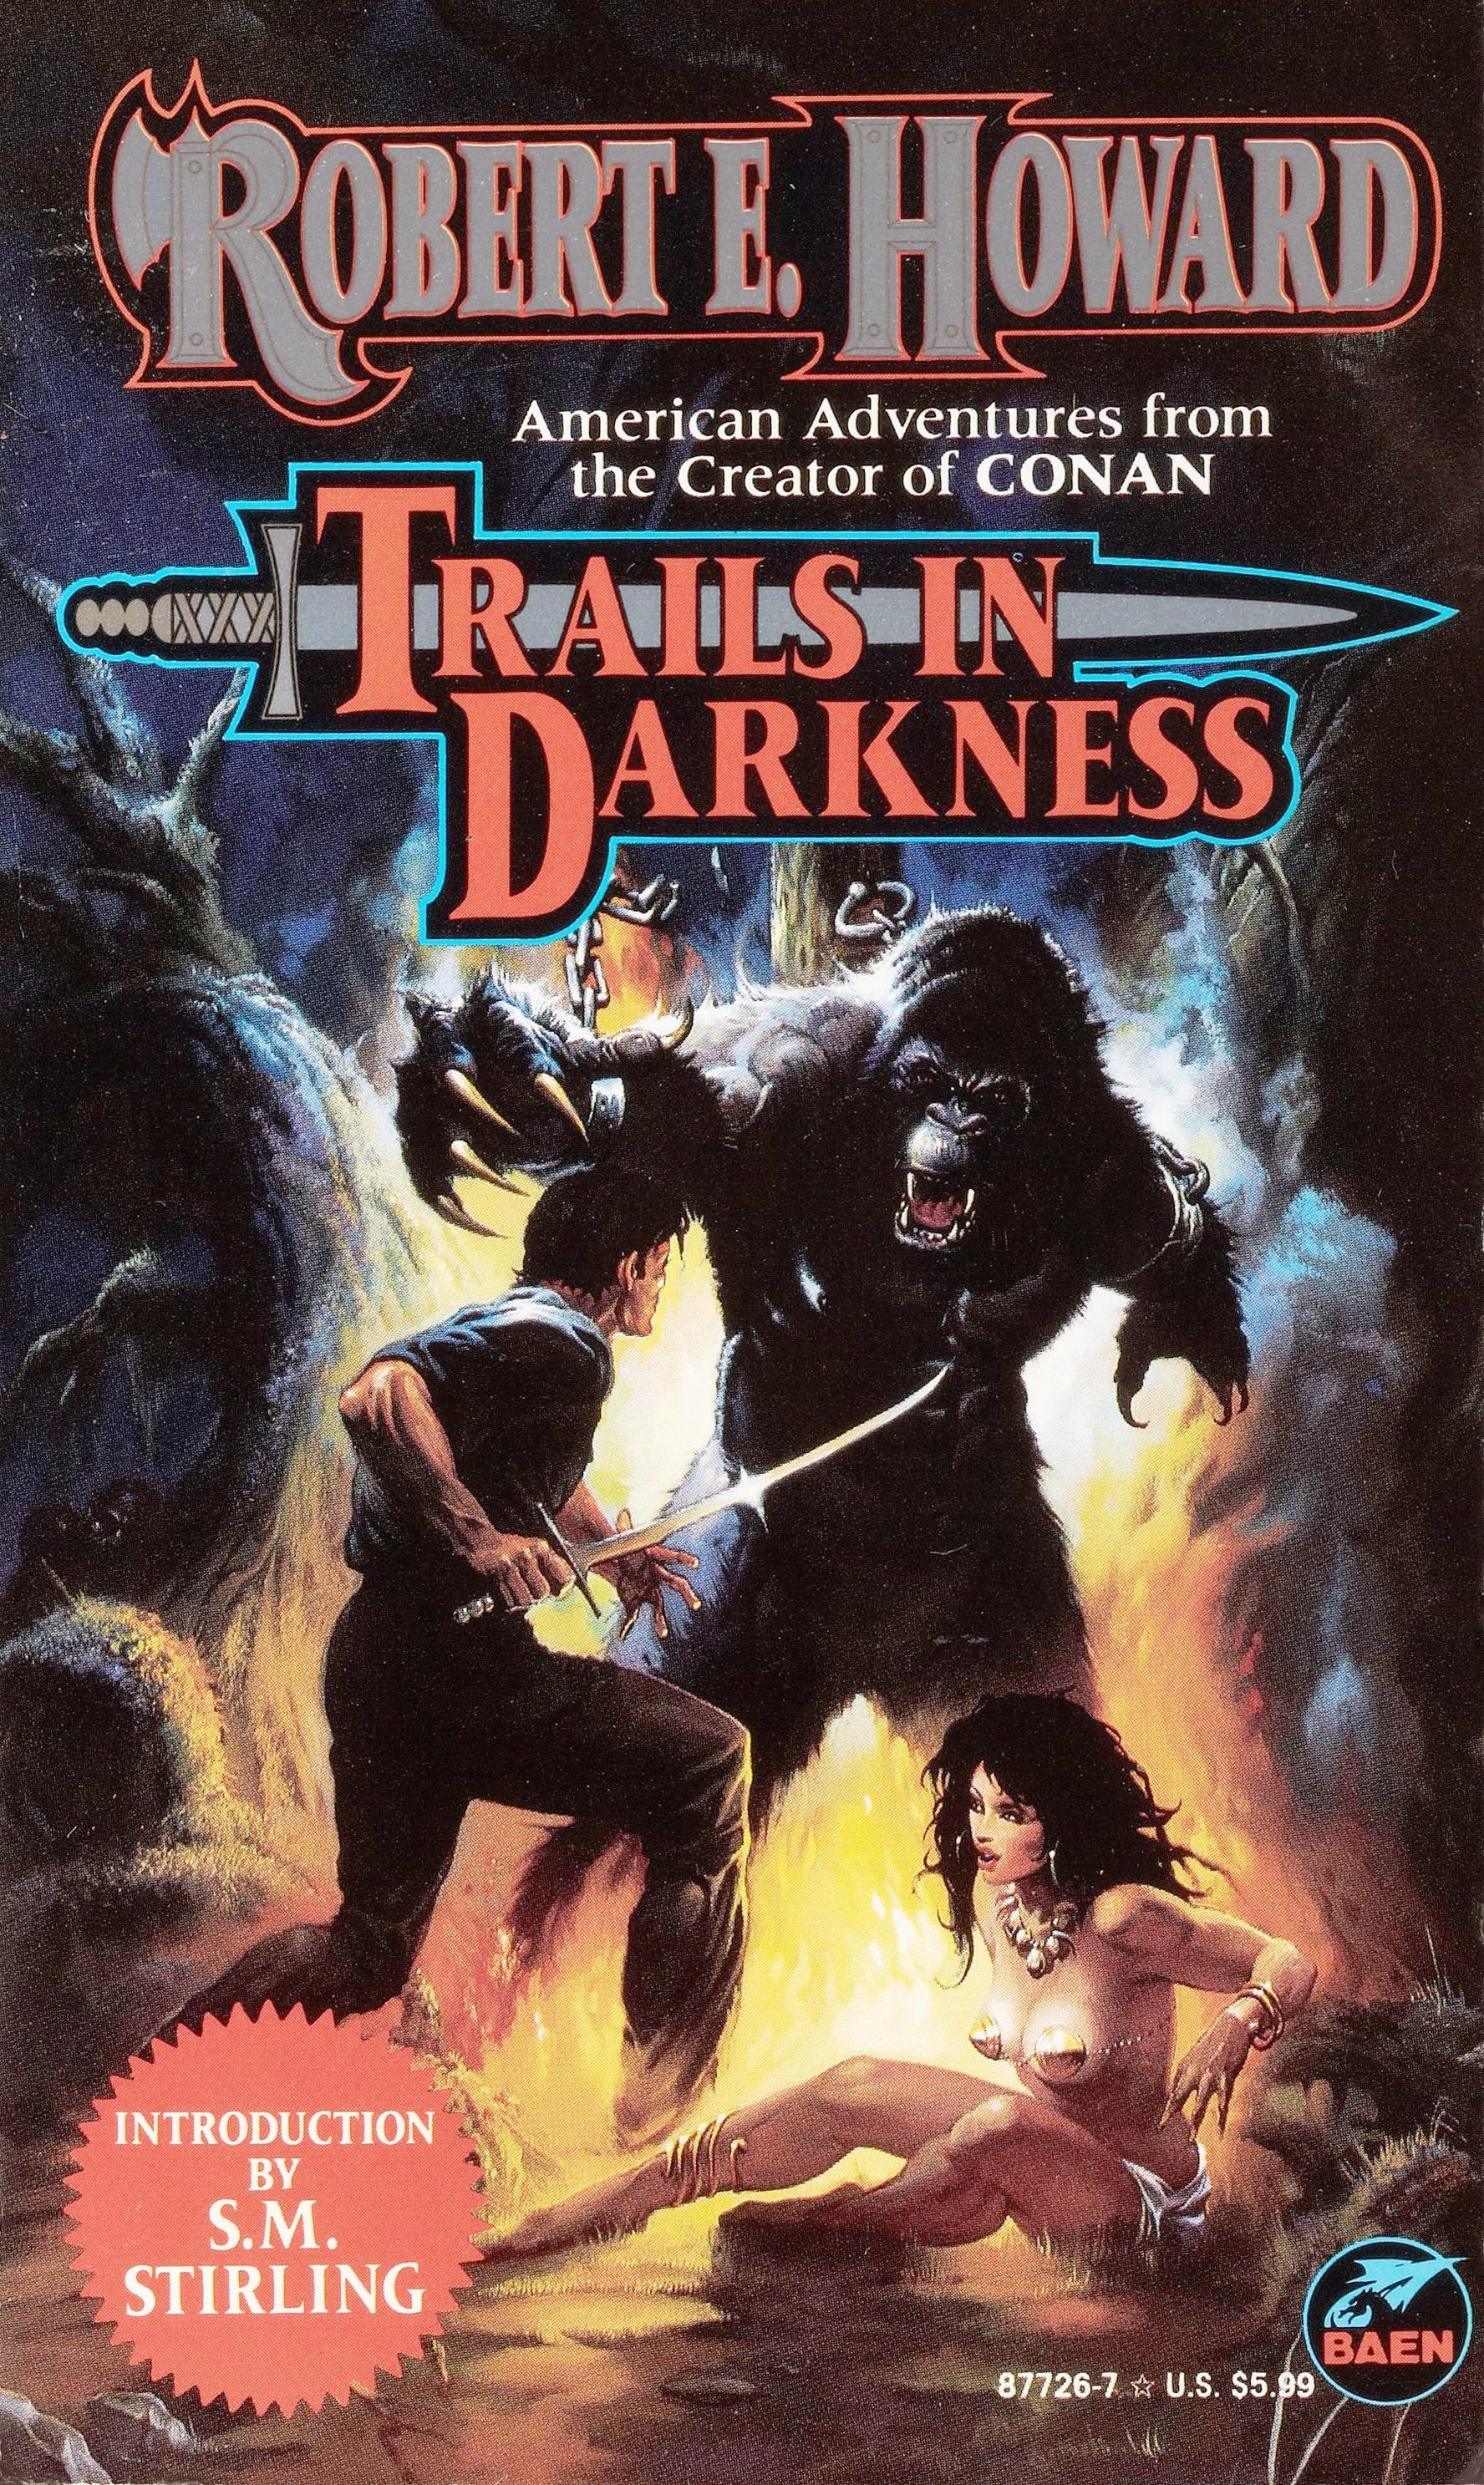 Trails in Darkness by Robert E. Howard / Book cover 1996 / 1995 (Ken Kelly)  | Conan the barbarian, Sword and sorcery, Book cover